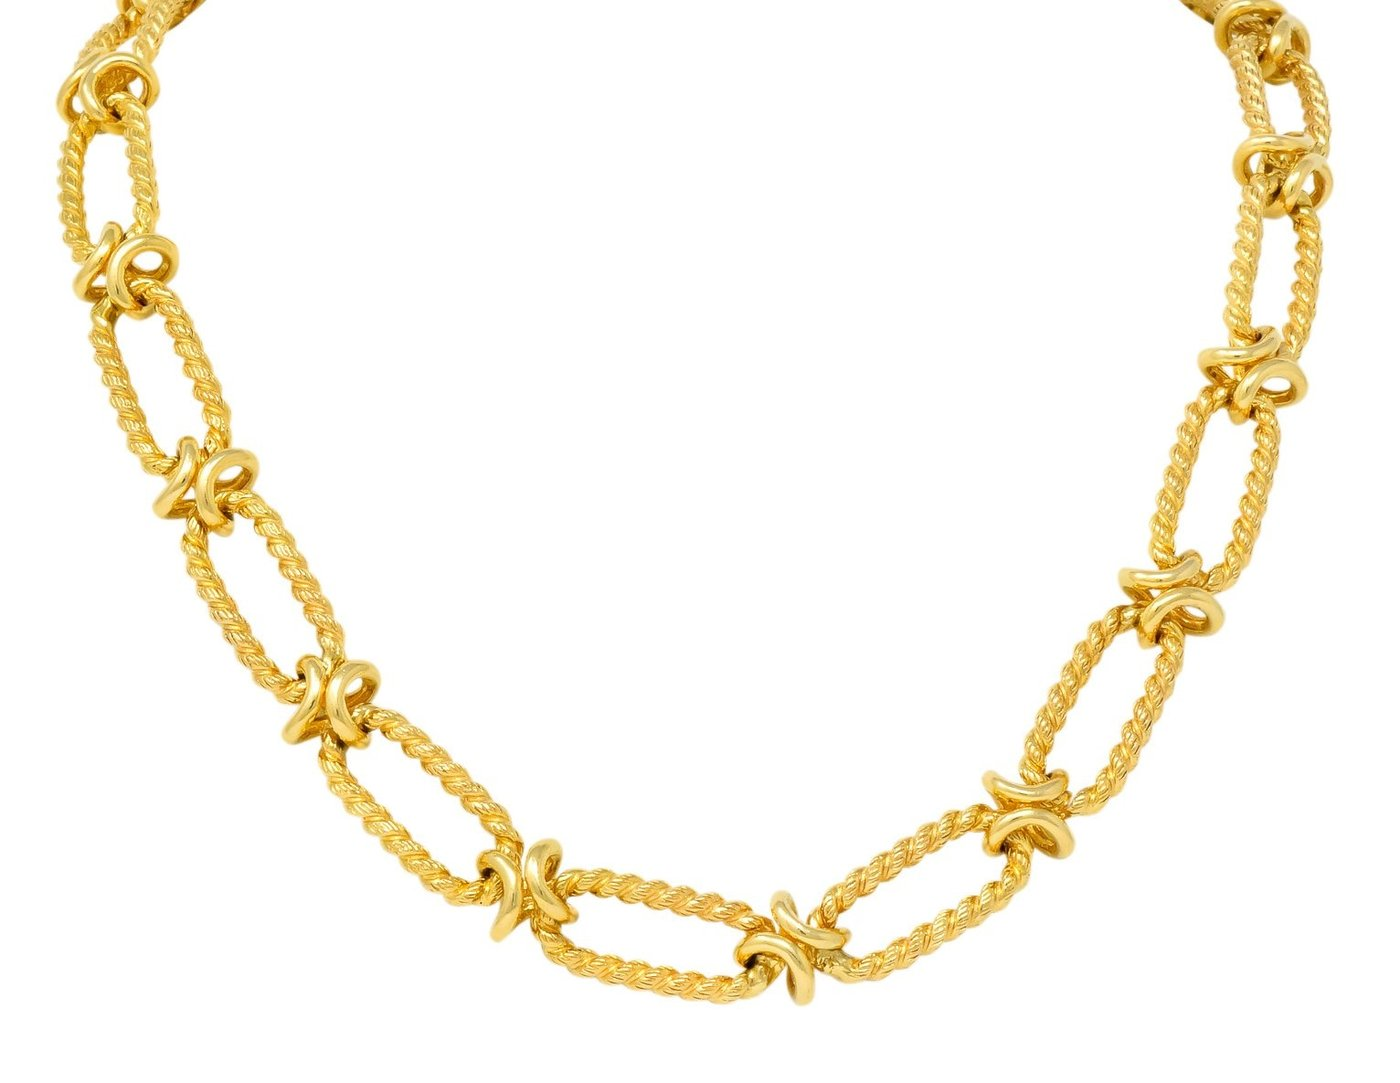 Gold Link Chain Twisted Rope Statement Collar Necklace